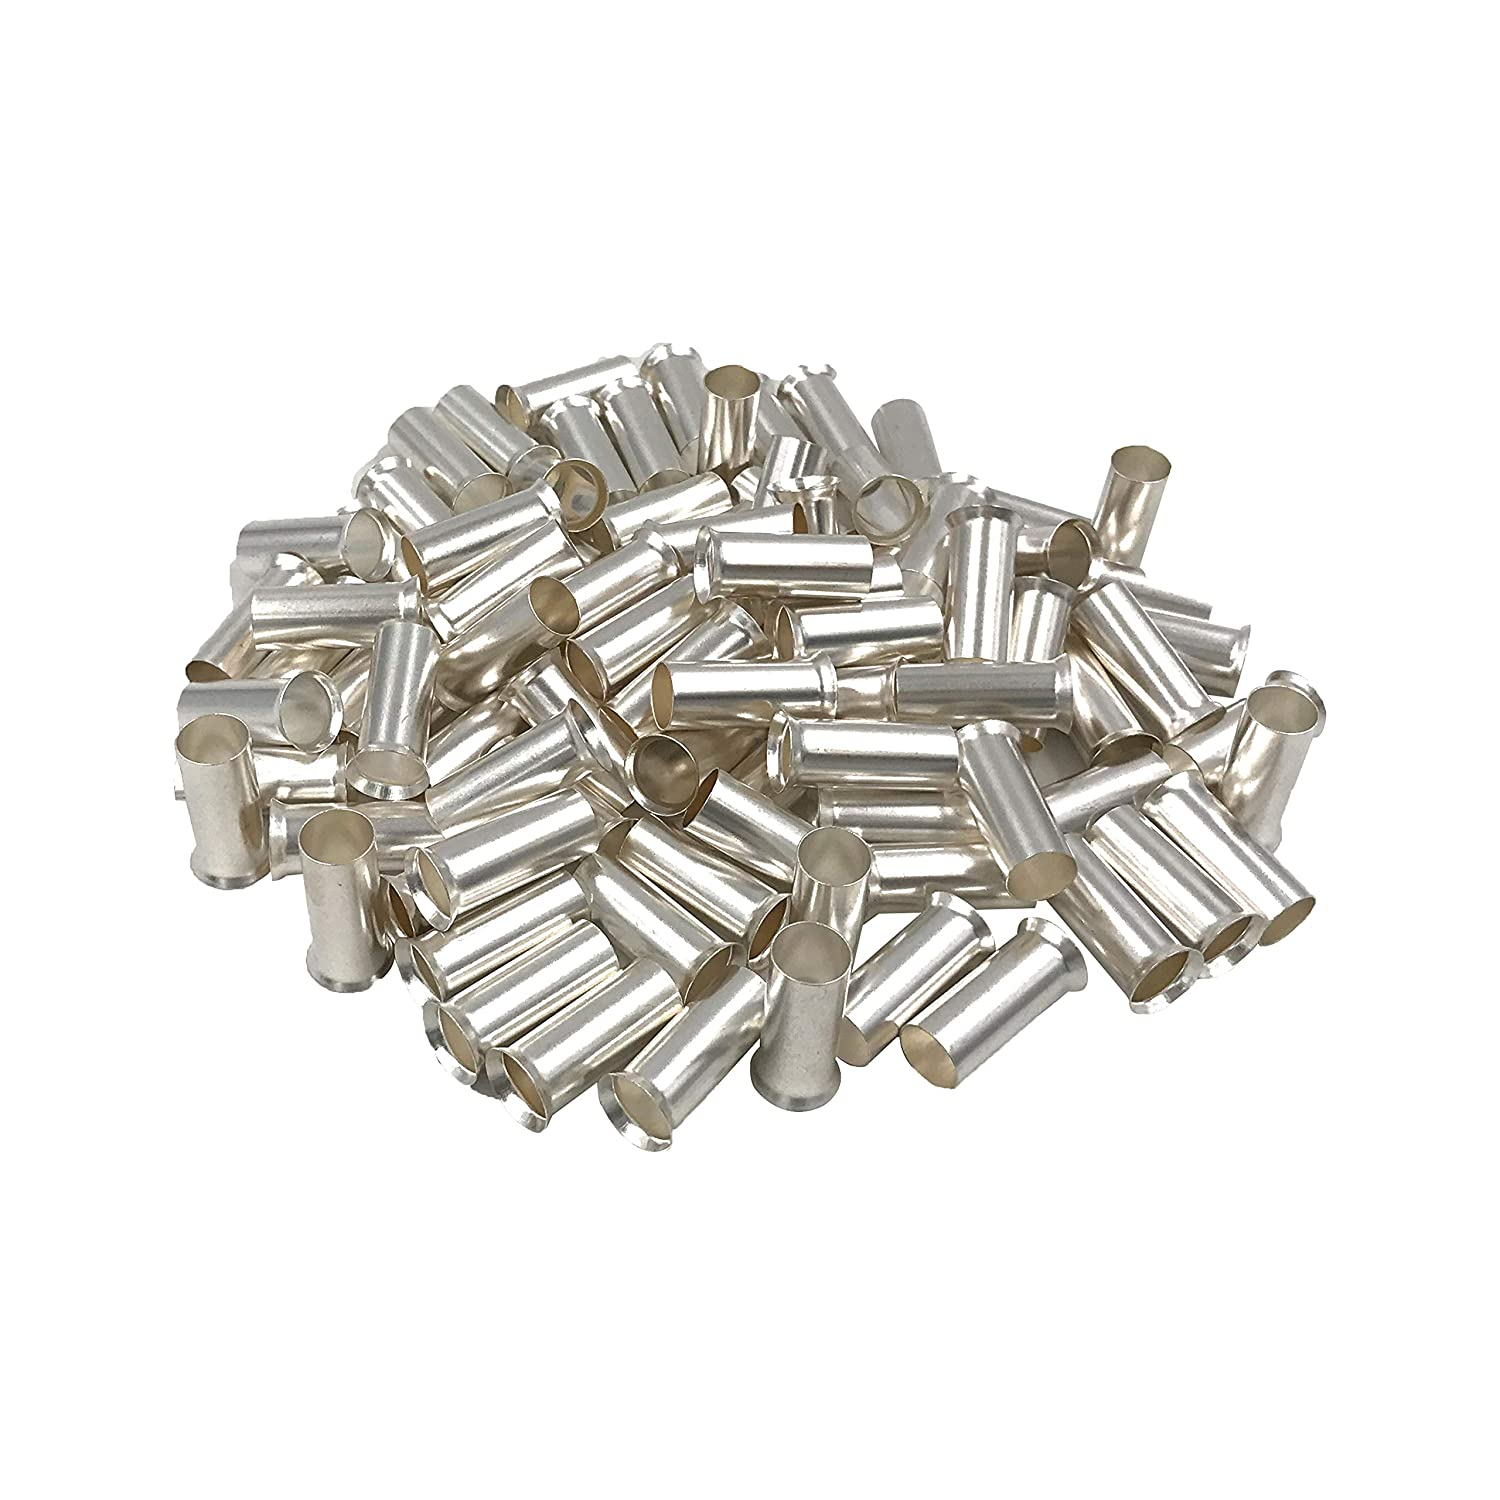 100PCS Wire Copper Crimp Connector Non Insulated Cable Housing Ferrule Pin Cord End Terminal AWG 4 / 25mm² Long: 20(.787)mm